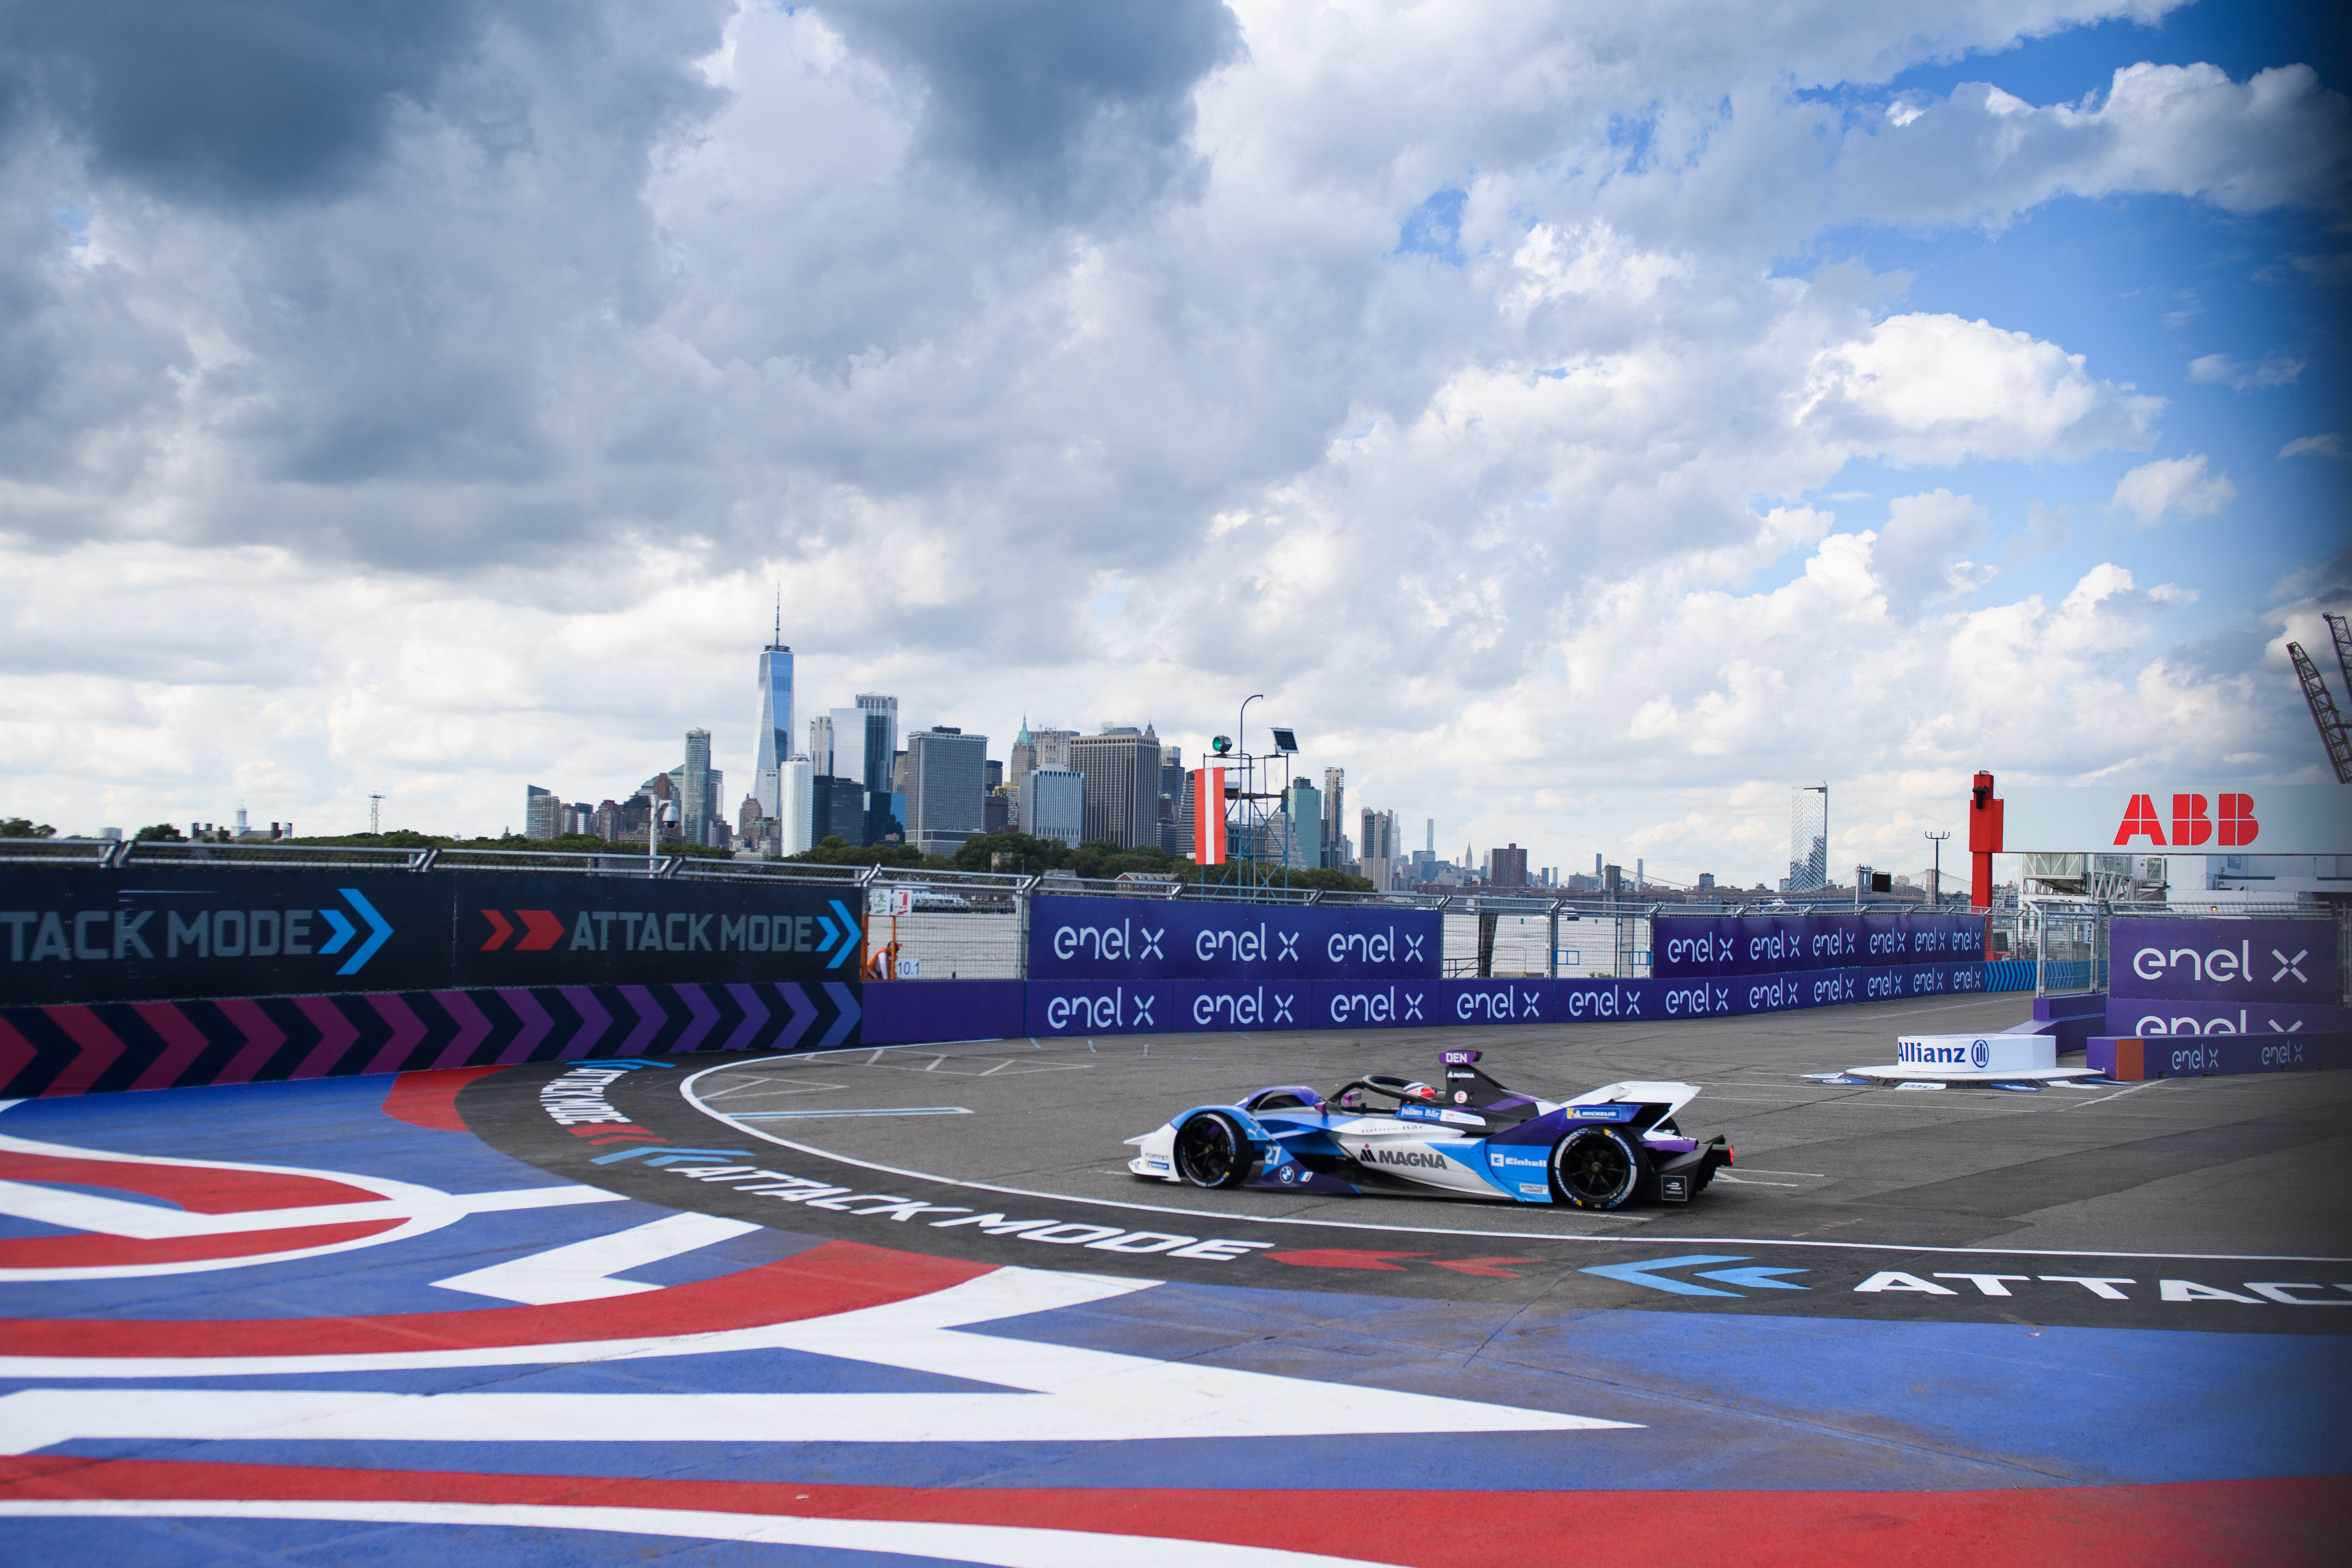 2020/21 Formula E: Team-by-Team End of Season Preview - part two